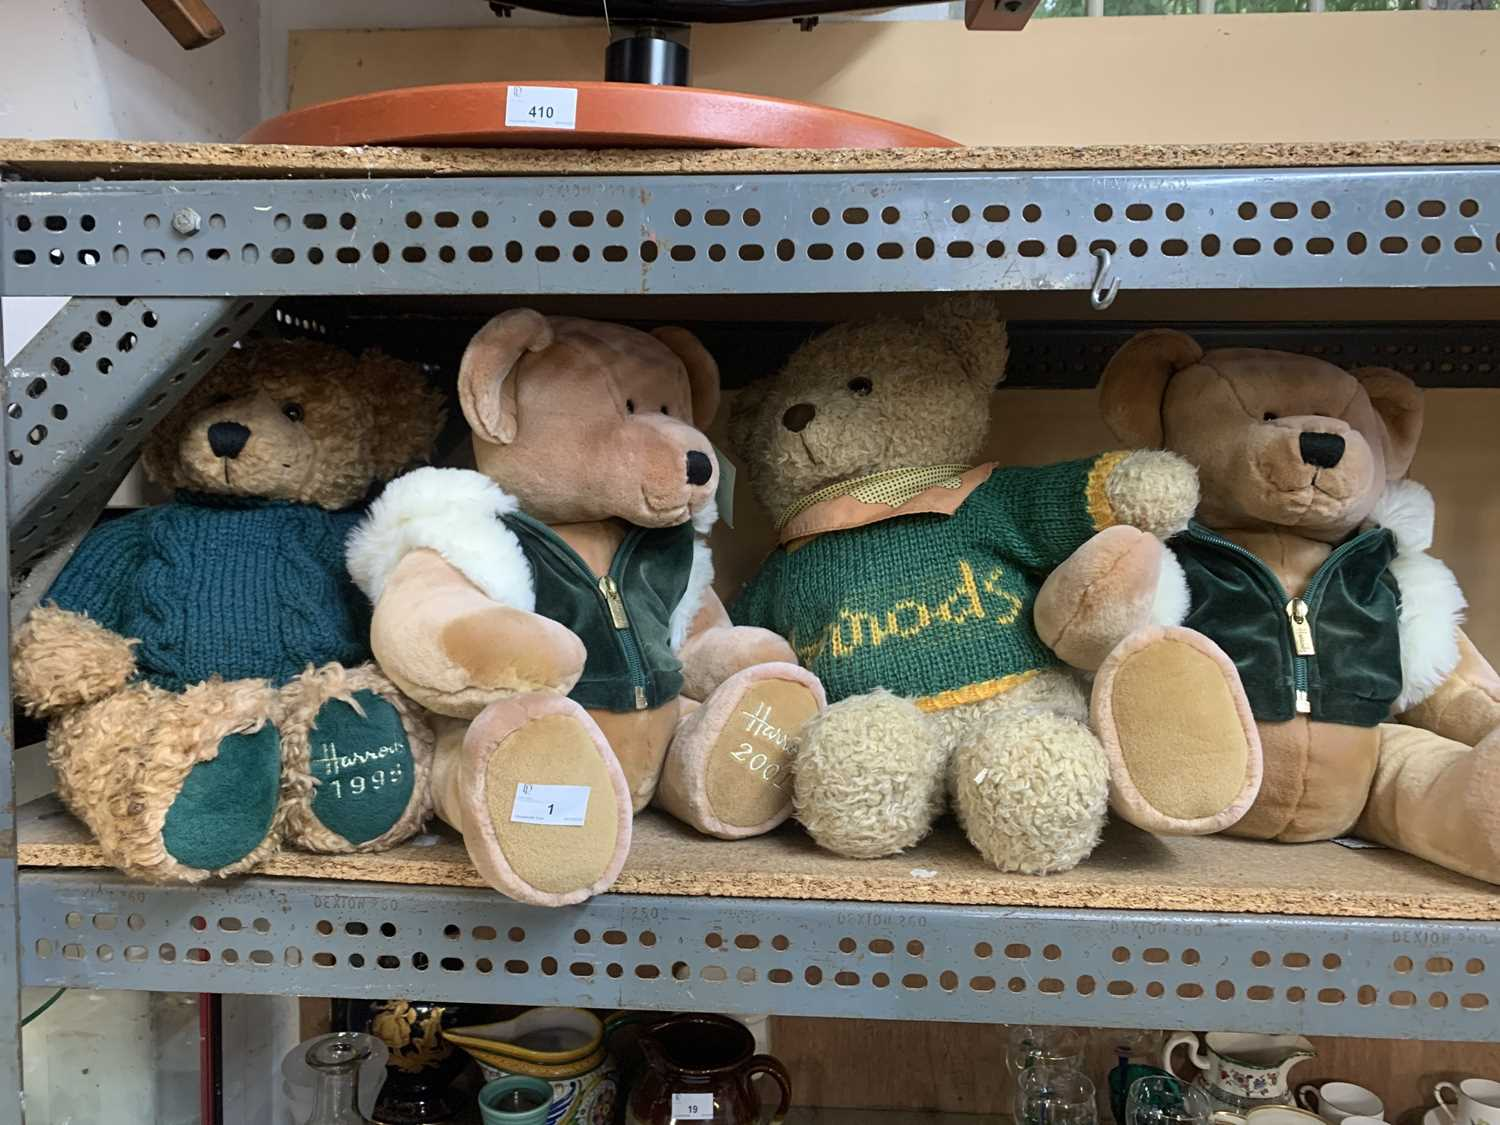 Lot 1-Four Harrod's Christmas collectable teddy bears.